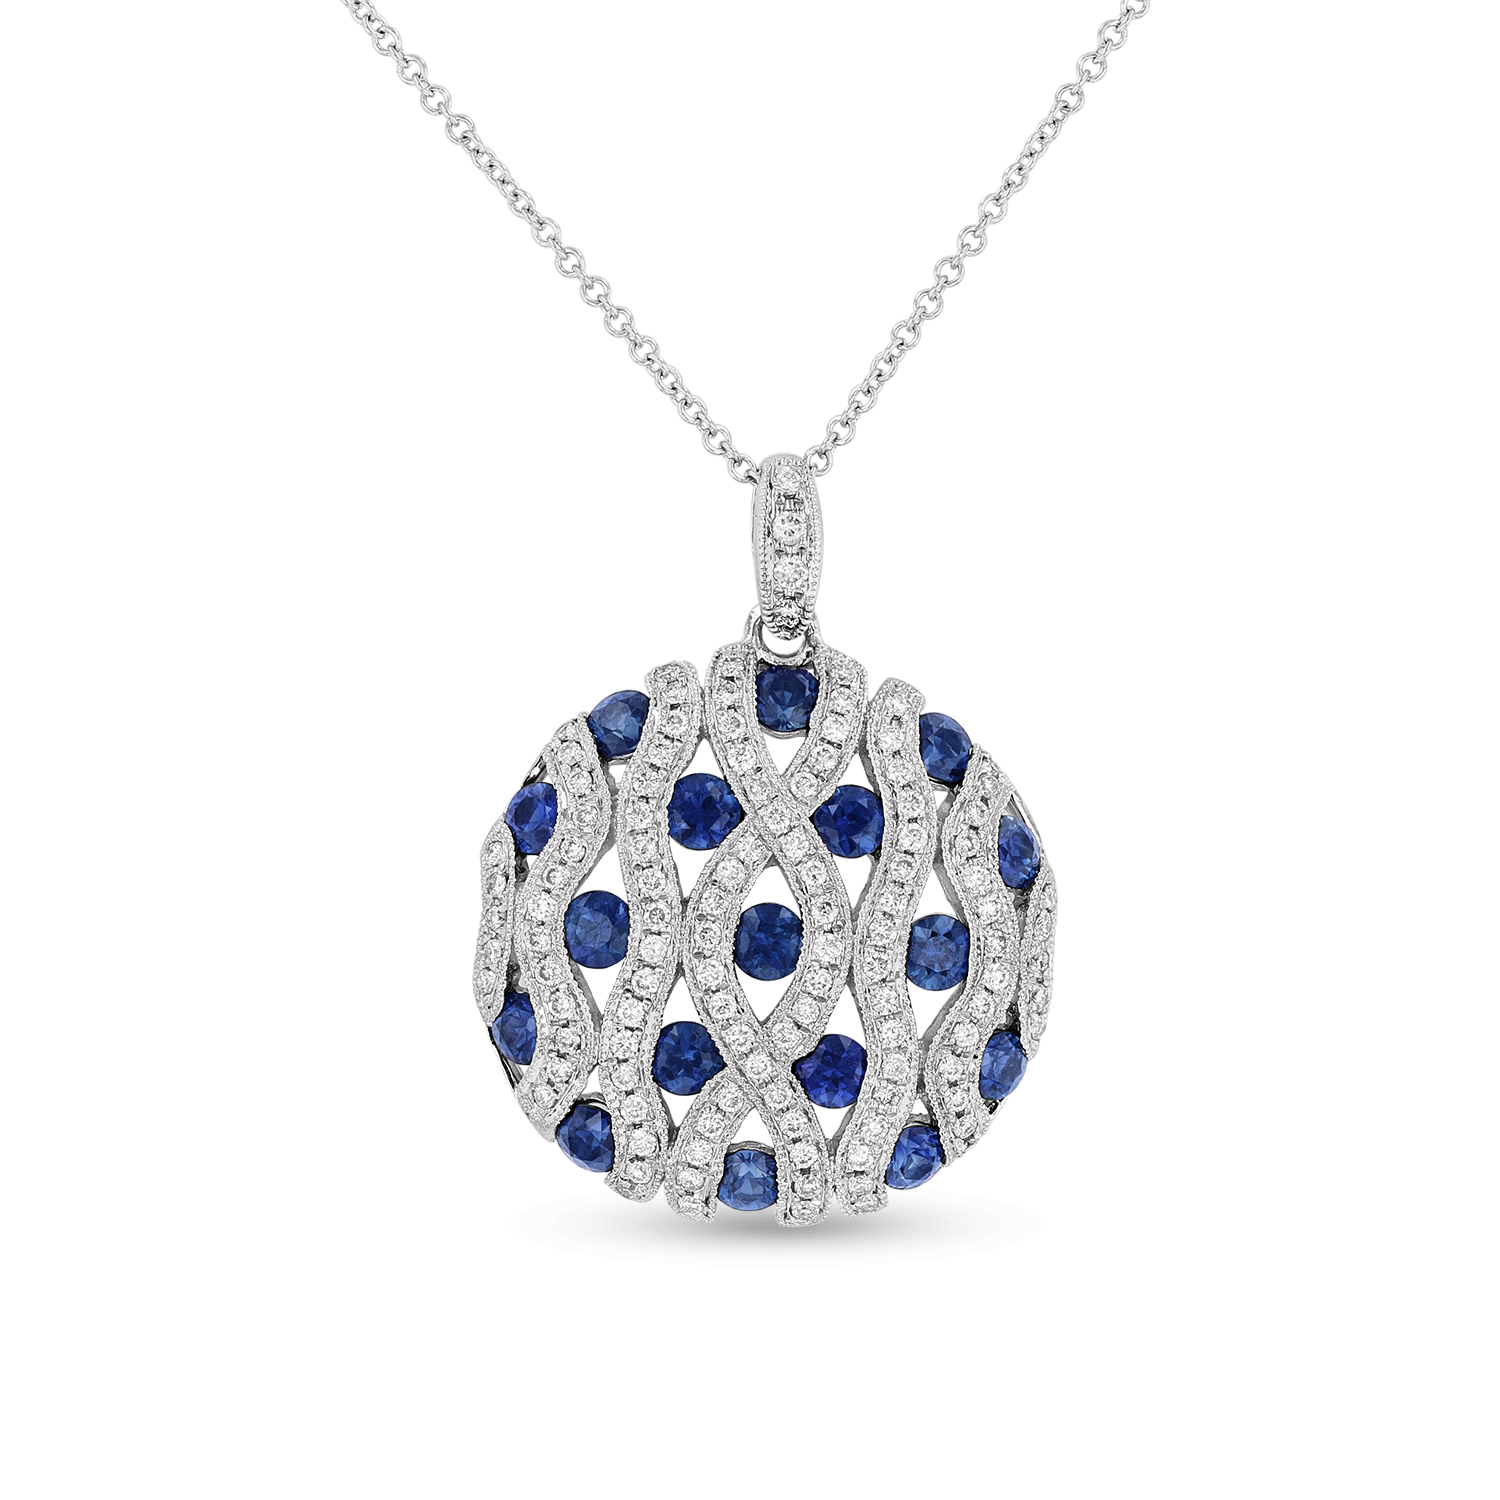 View 2.93ct tw Circle Sapphire and Diamond Pendant set in 14k White Gold